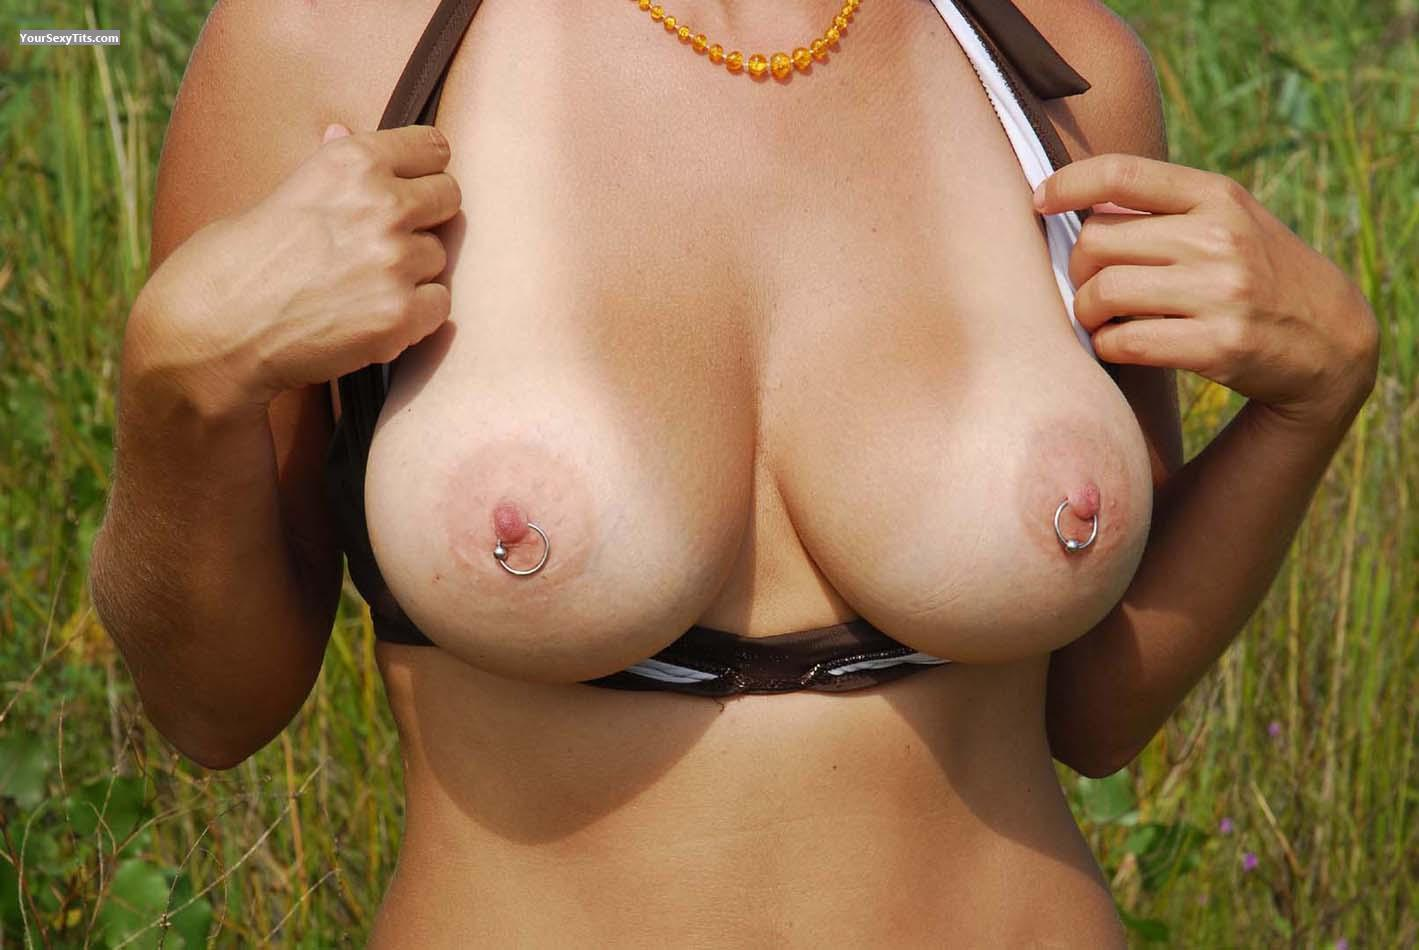 Very big Tits Sensitive